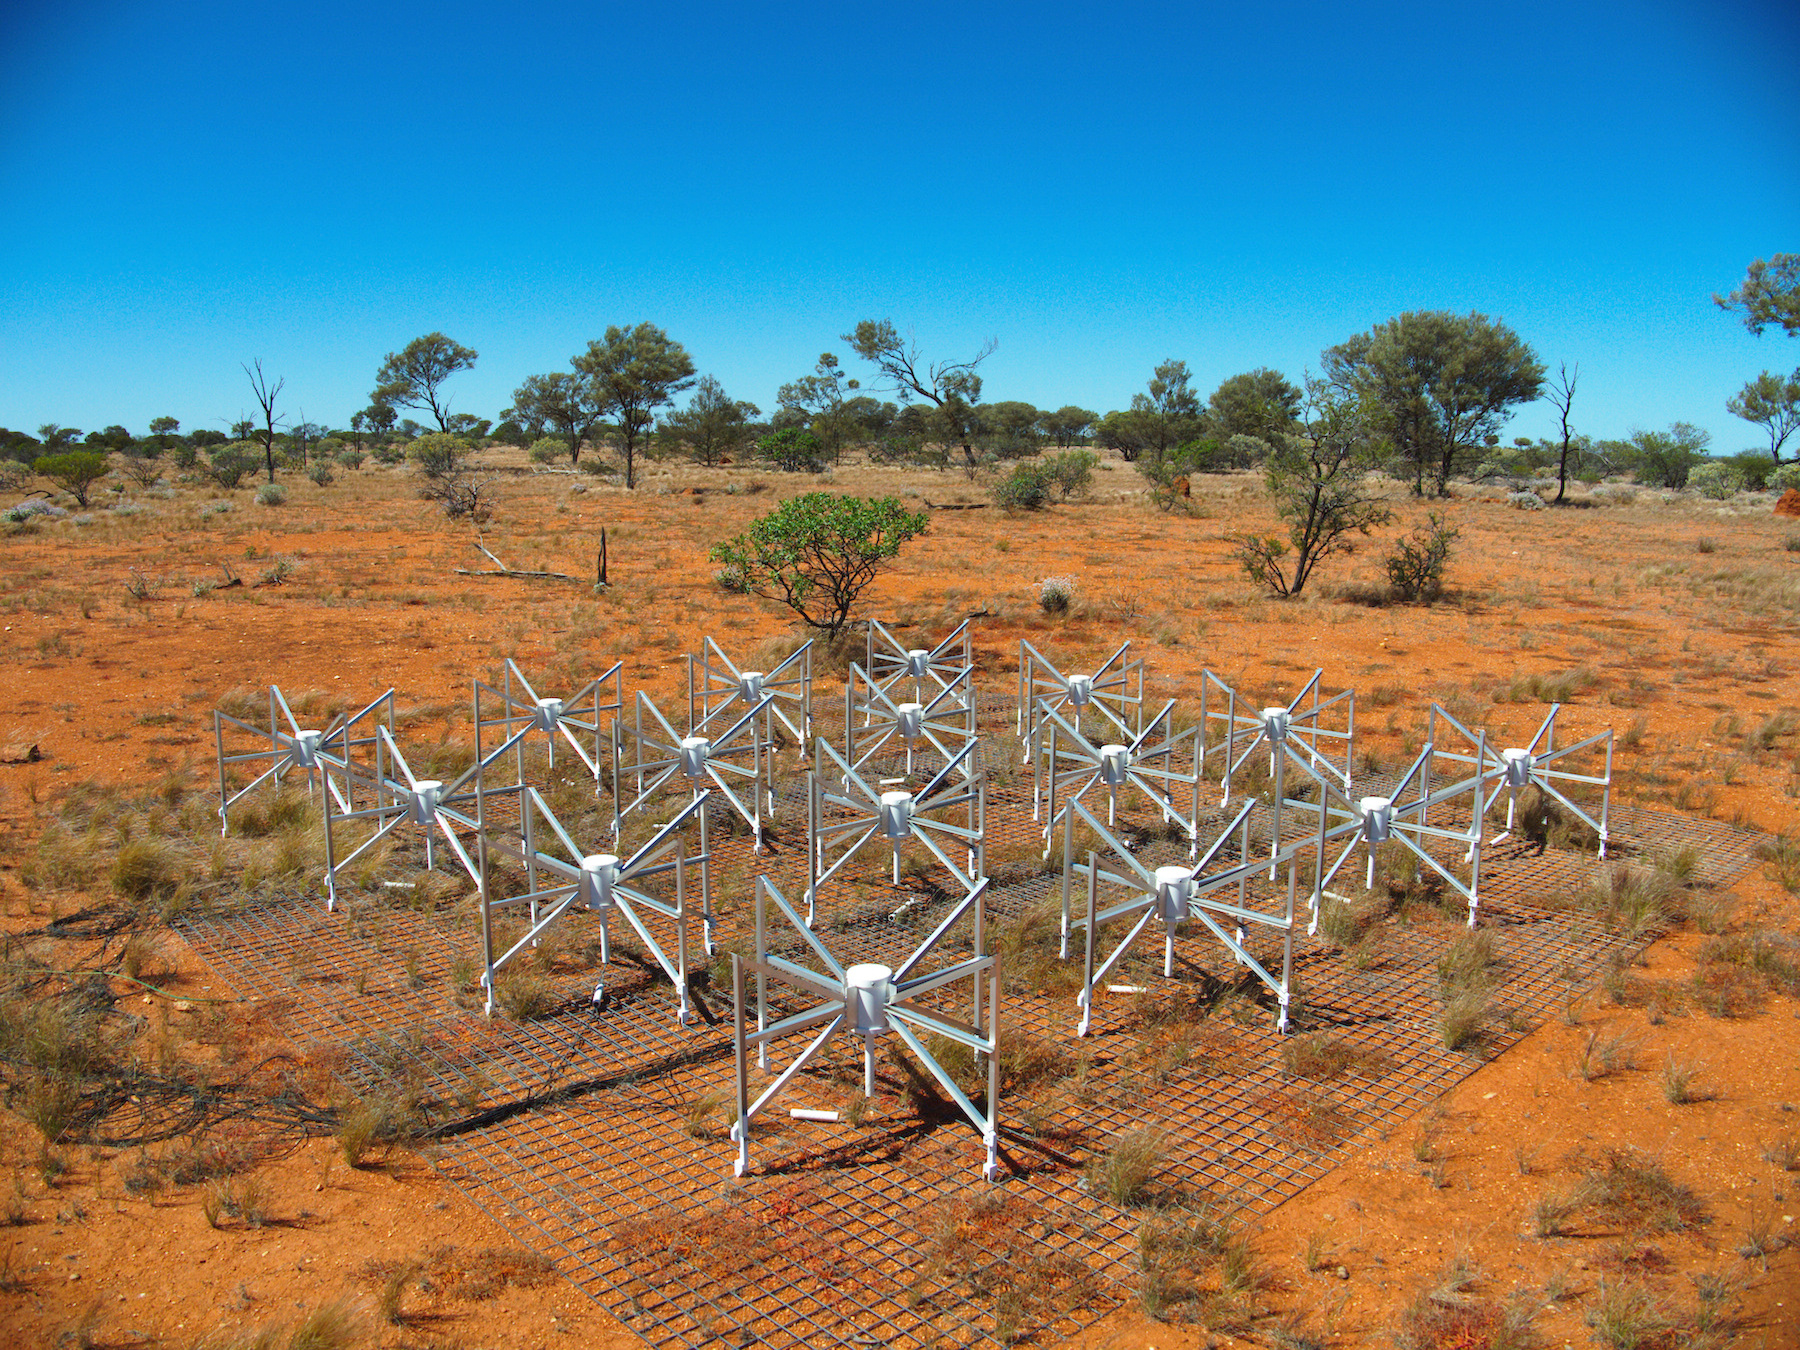 """One """"tile"""" of the Murchison Wide-field Array telescope in Australia. In preparation for looking for the first generation of galaxies, the facility has published the first catalogue of extragalactic sources of contamination in one of the fields of view. Image credit: Murchison Wide-field Array."""